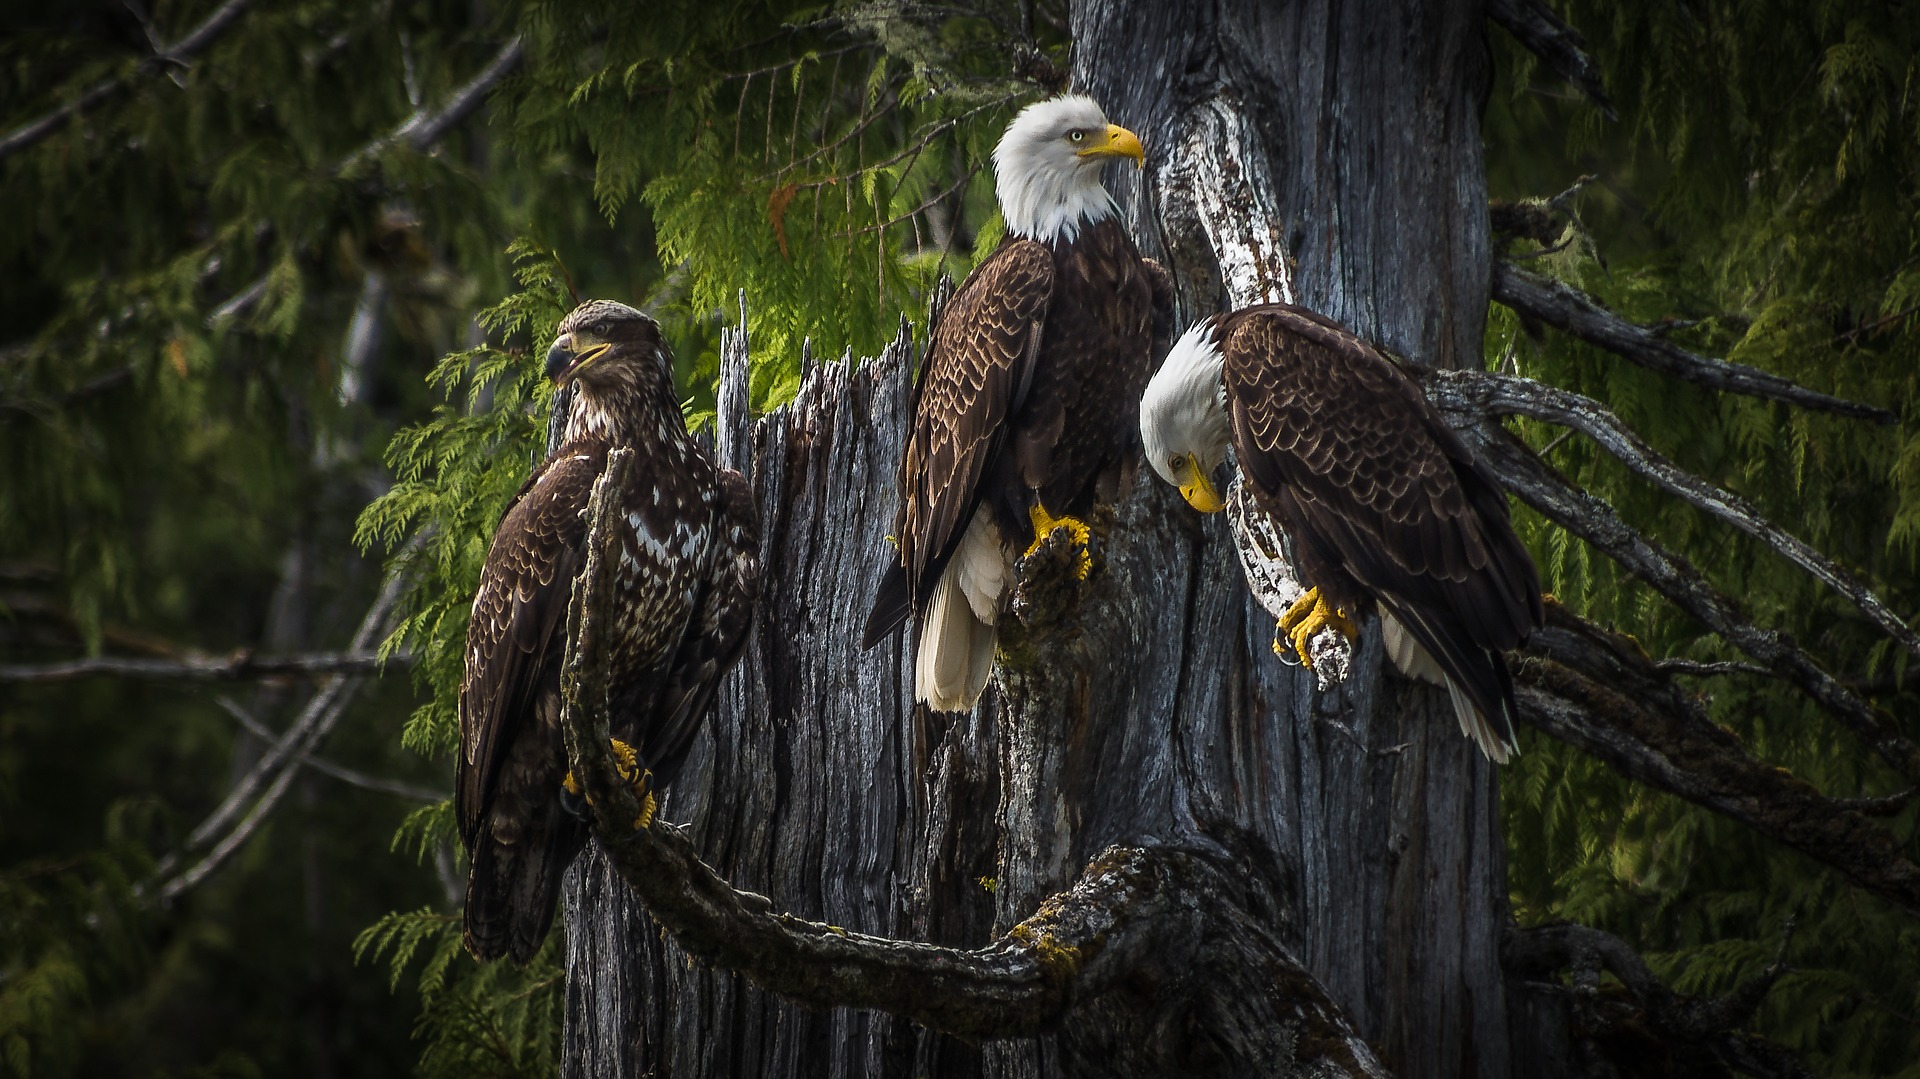 Let your knowledge of eagles fly high with these ebook recommendations